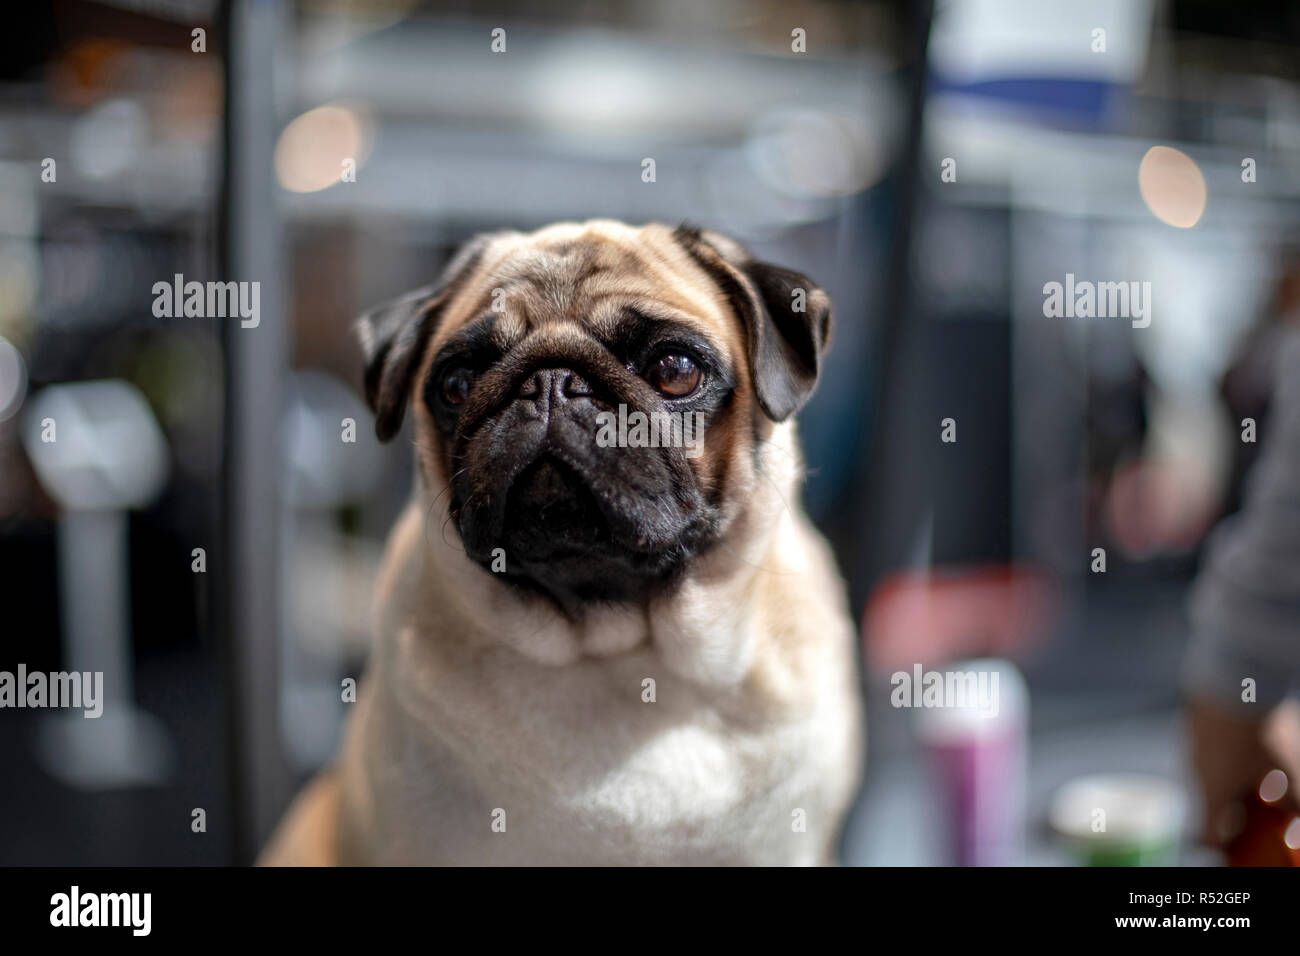 Lovely pug with blinking eye is sitting in front of a shopwindow in a shopping street waiting for his owner. - Stock Image